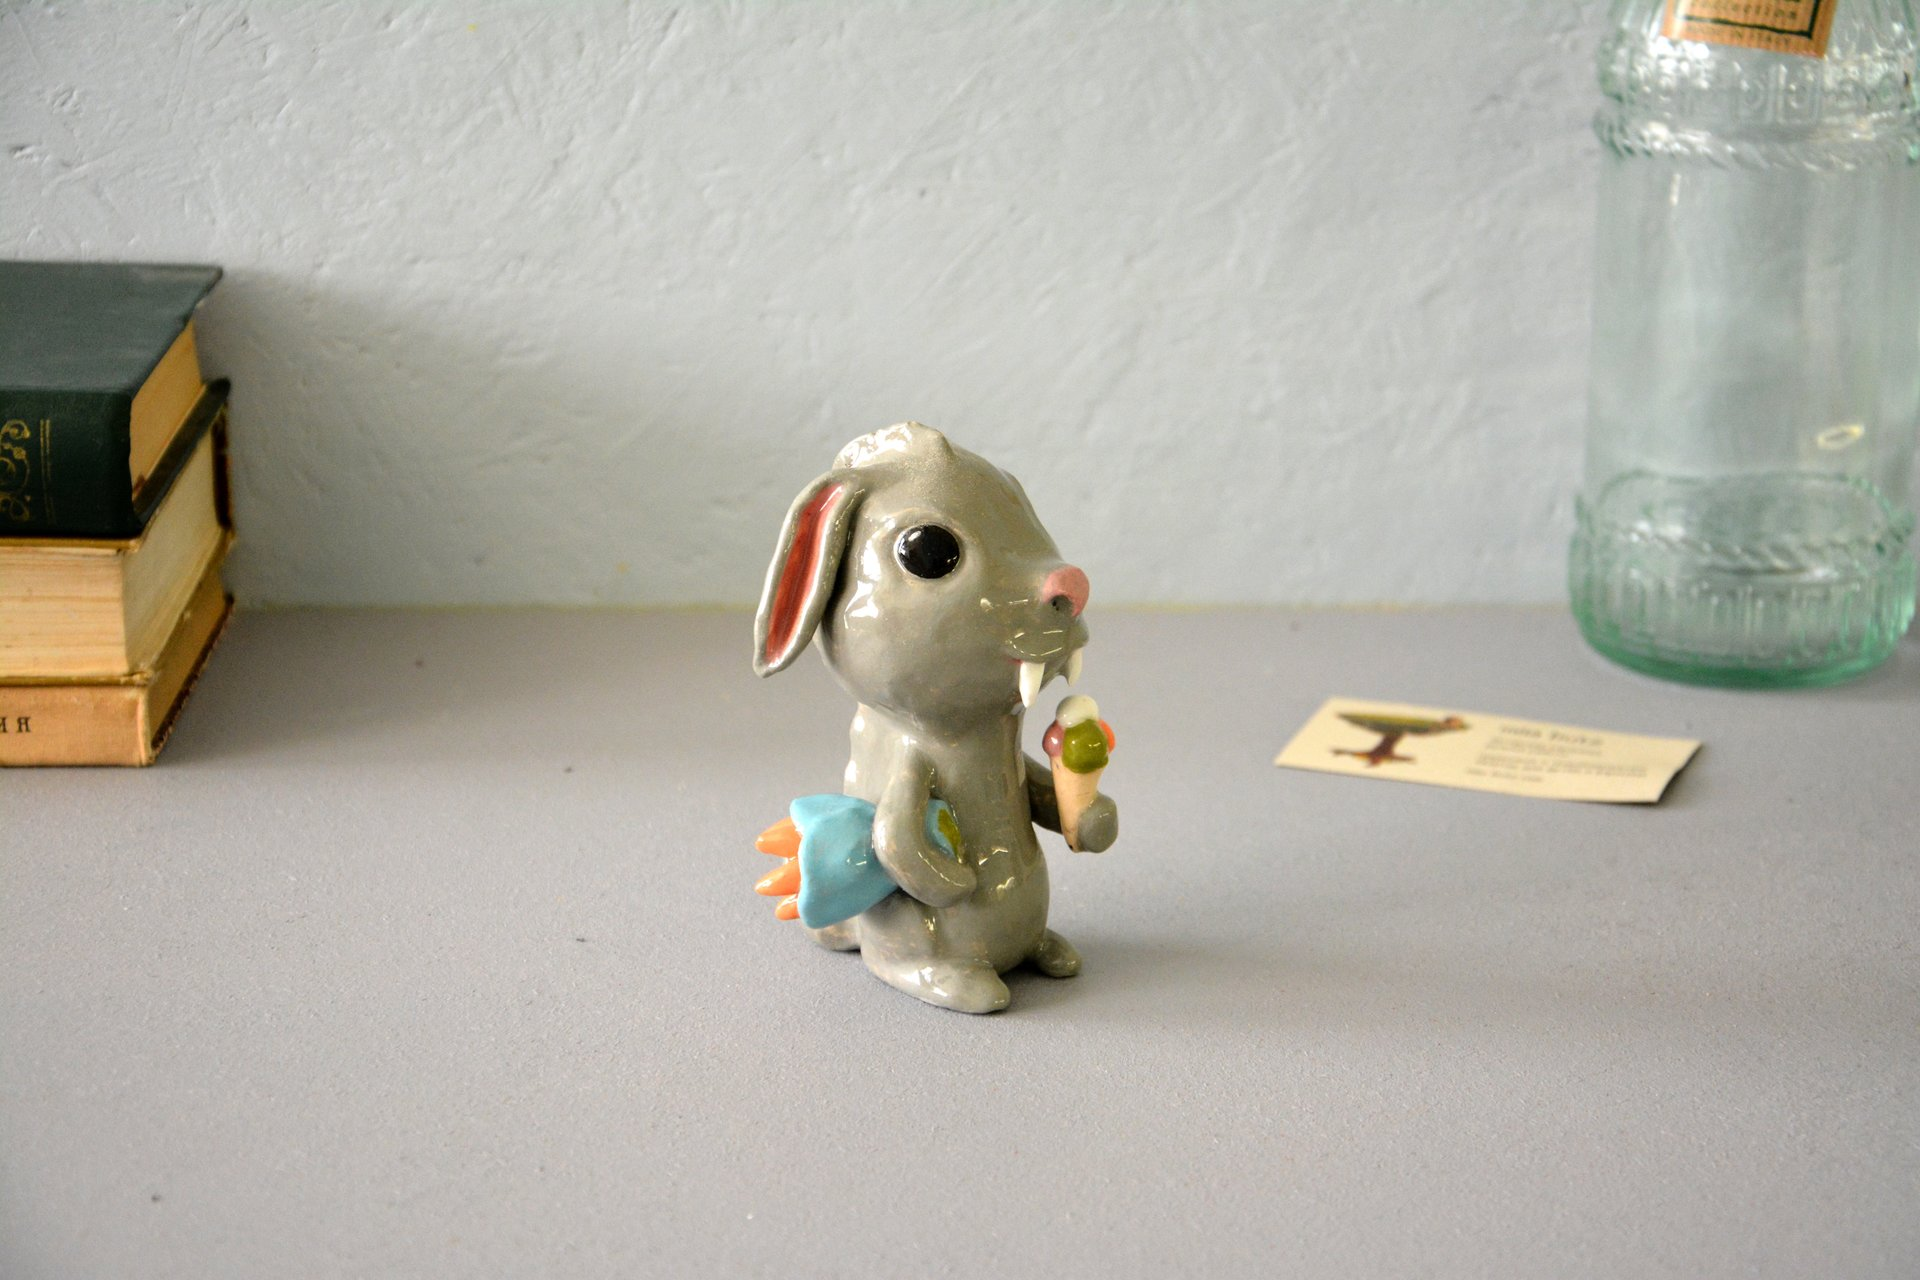 Clay figurine Saber-toothed Rabbit, height - 12 cm, photo 3 of 5.